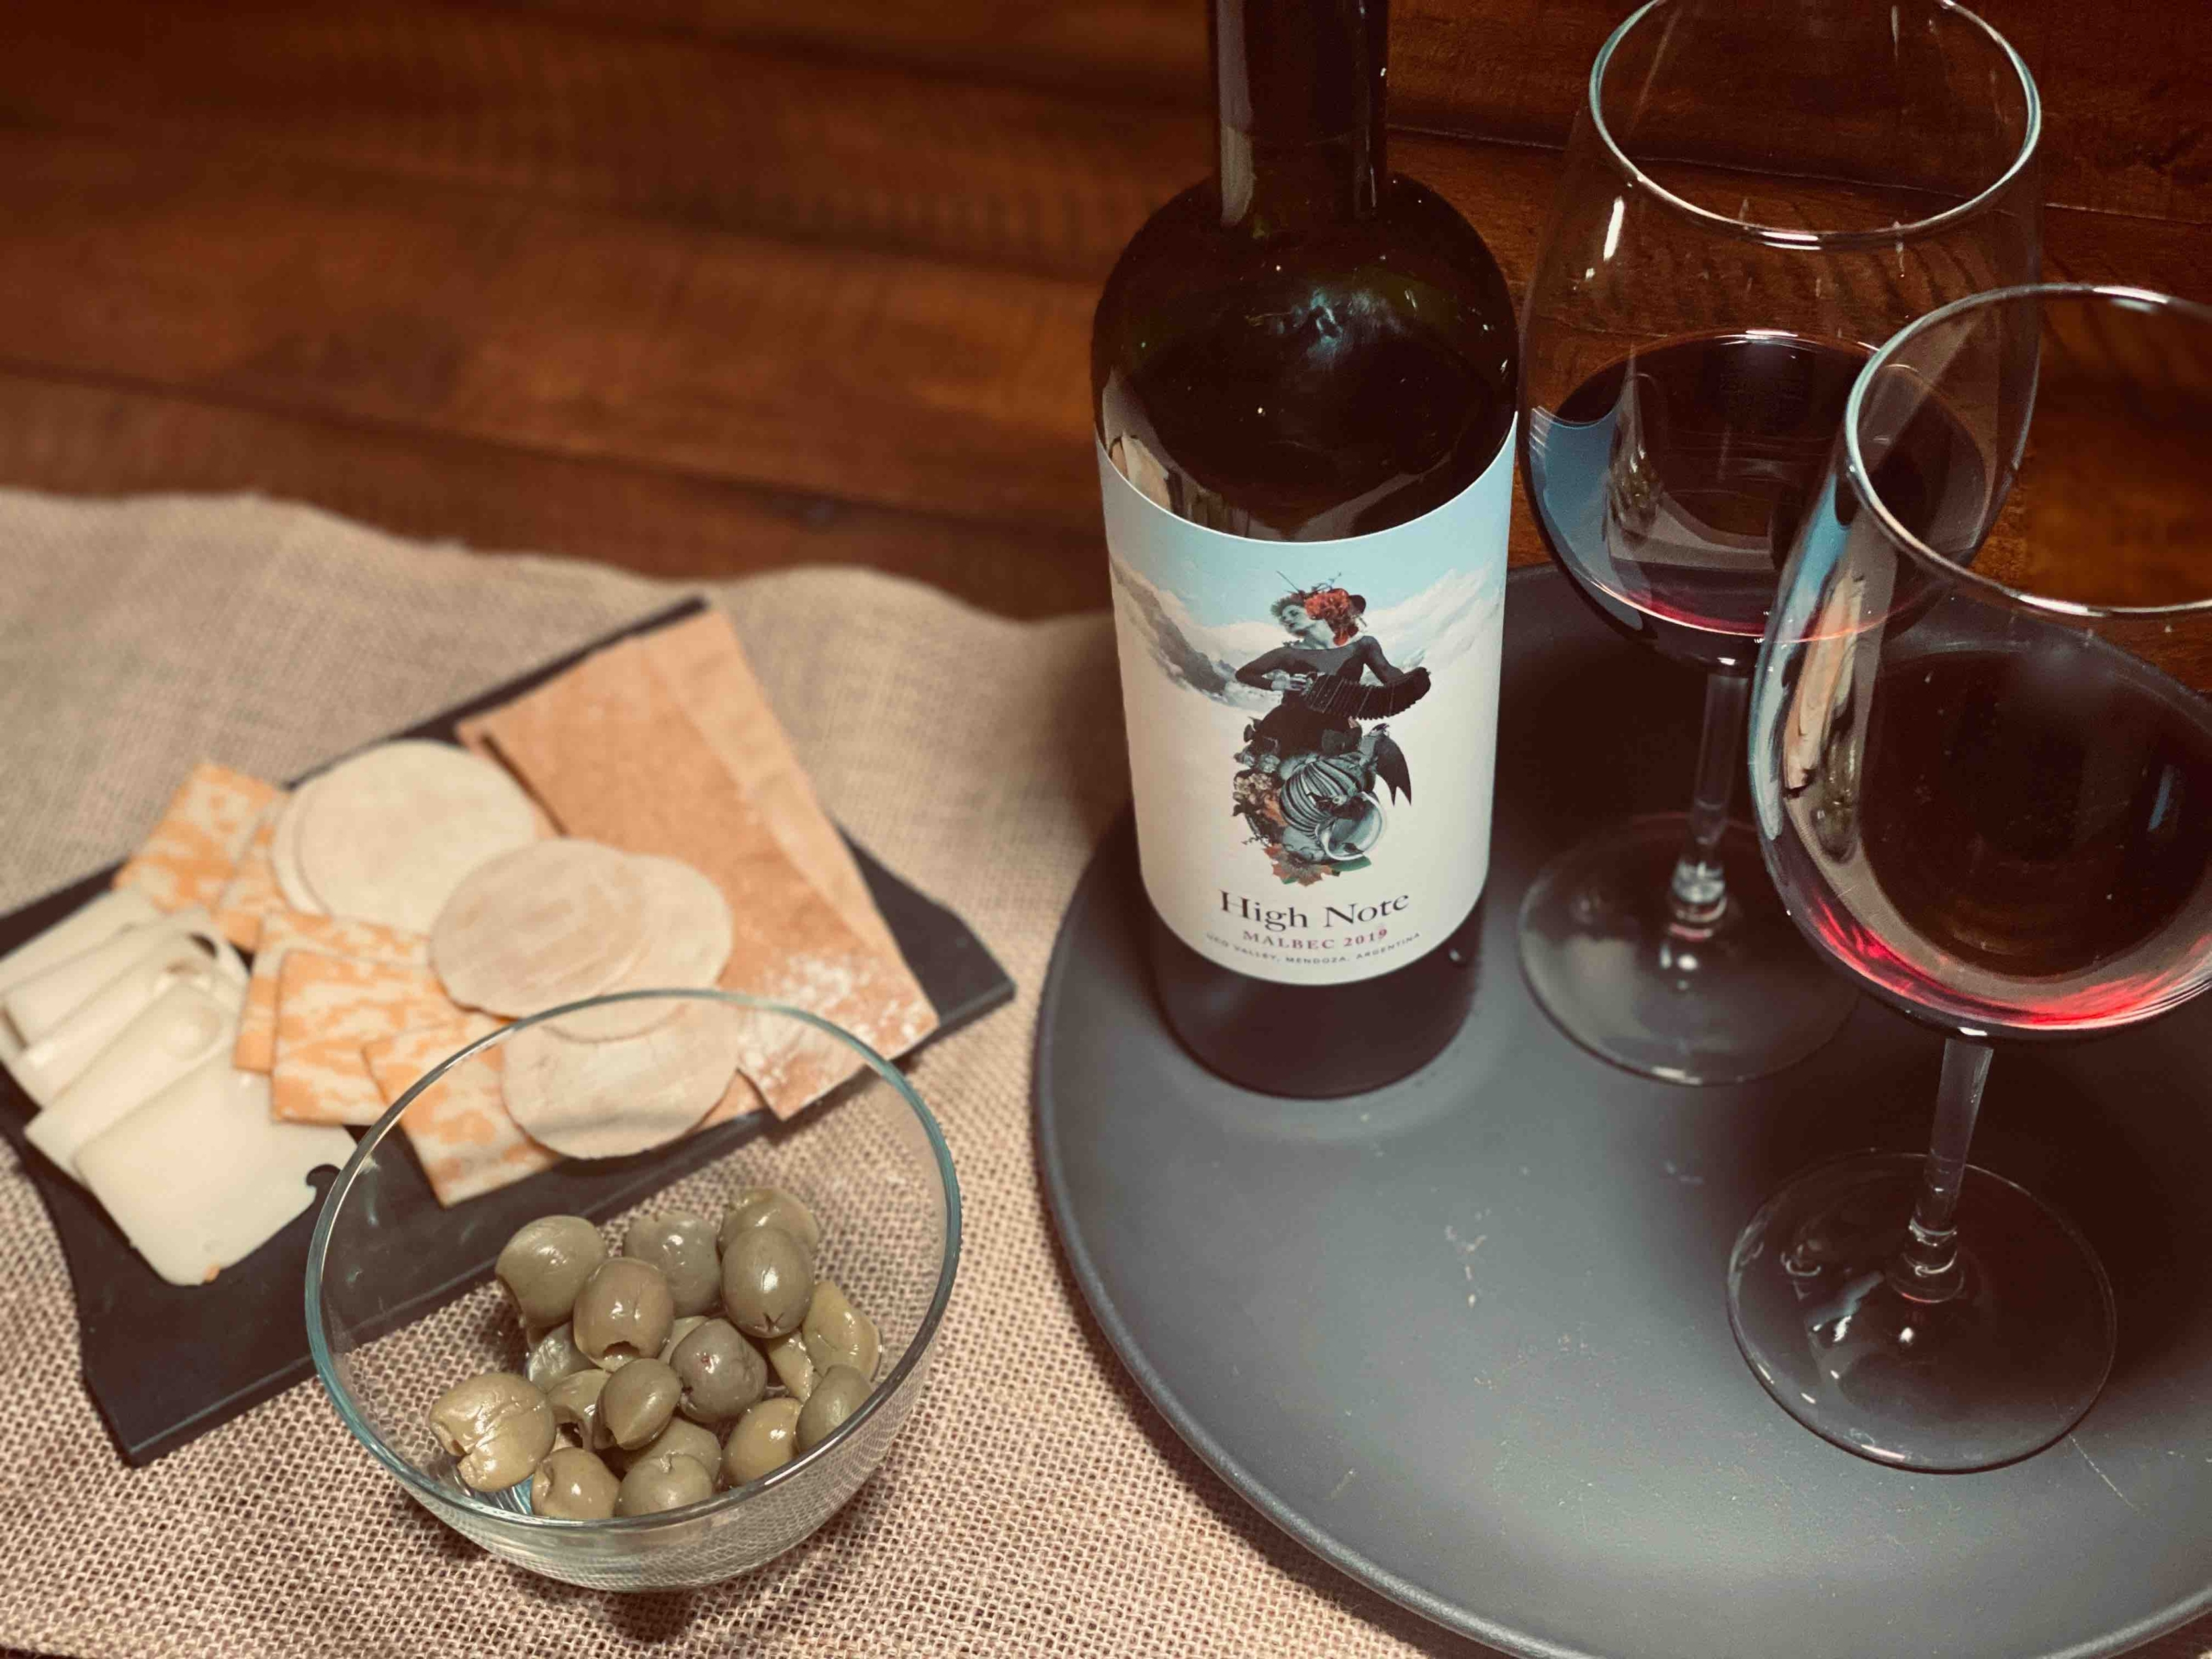 High Note Malbec Wine of Argentina